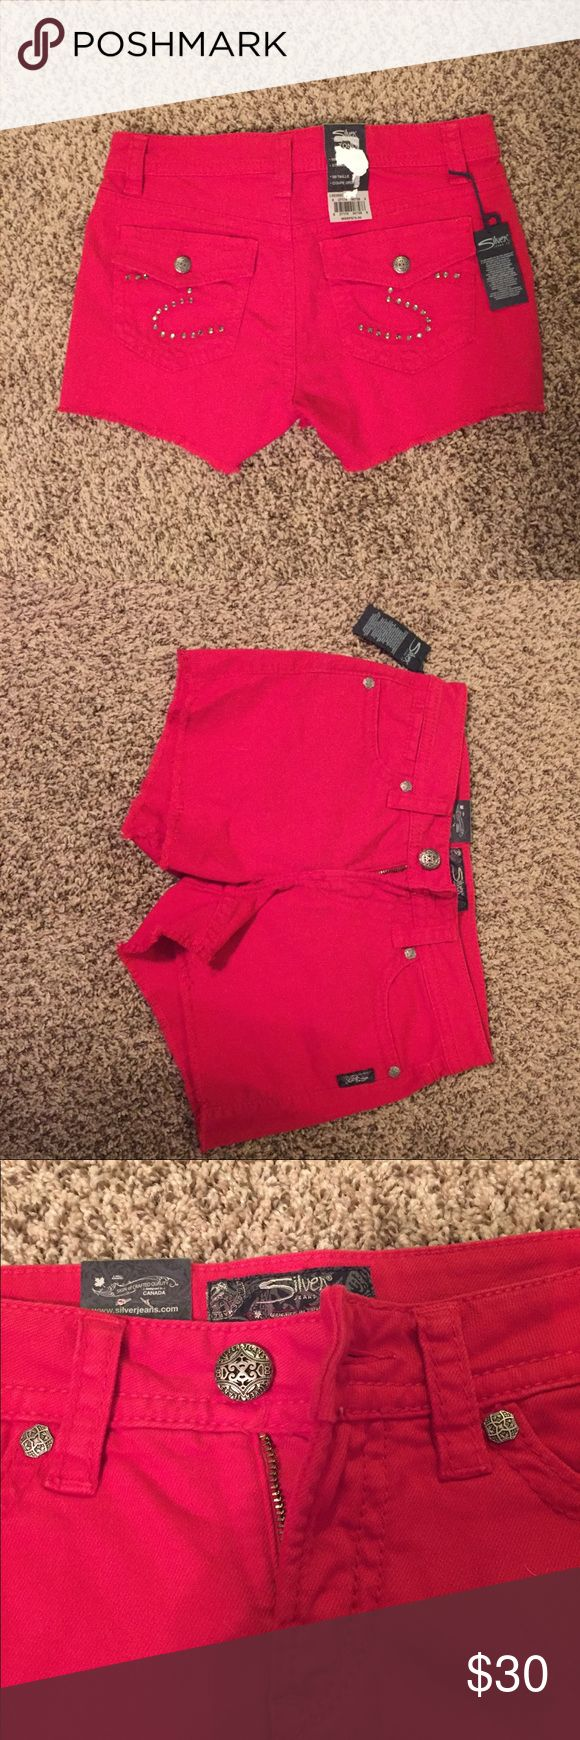 "Silver Jeans ""Toni Flap"" Shorts Women's 27 BRAND NEW never worn, tags still attached. Red Jean shorts with studded detail on back pockets. MSRP $78. Size 27. Toni Flap is the style name. Silver Jeans Shorts Jean Shorts"